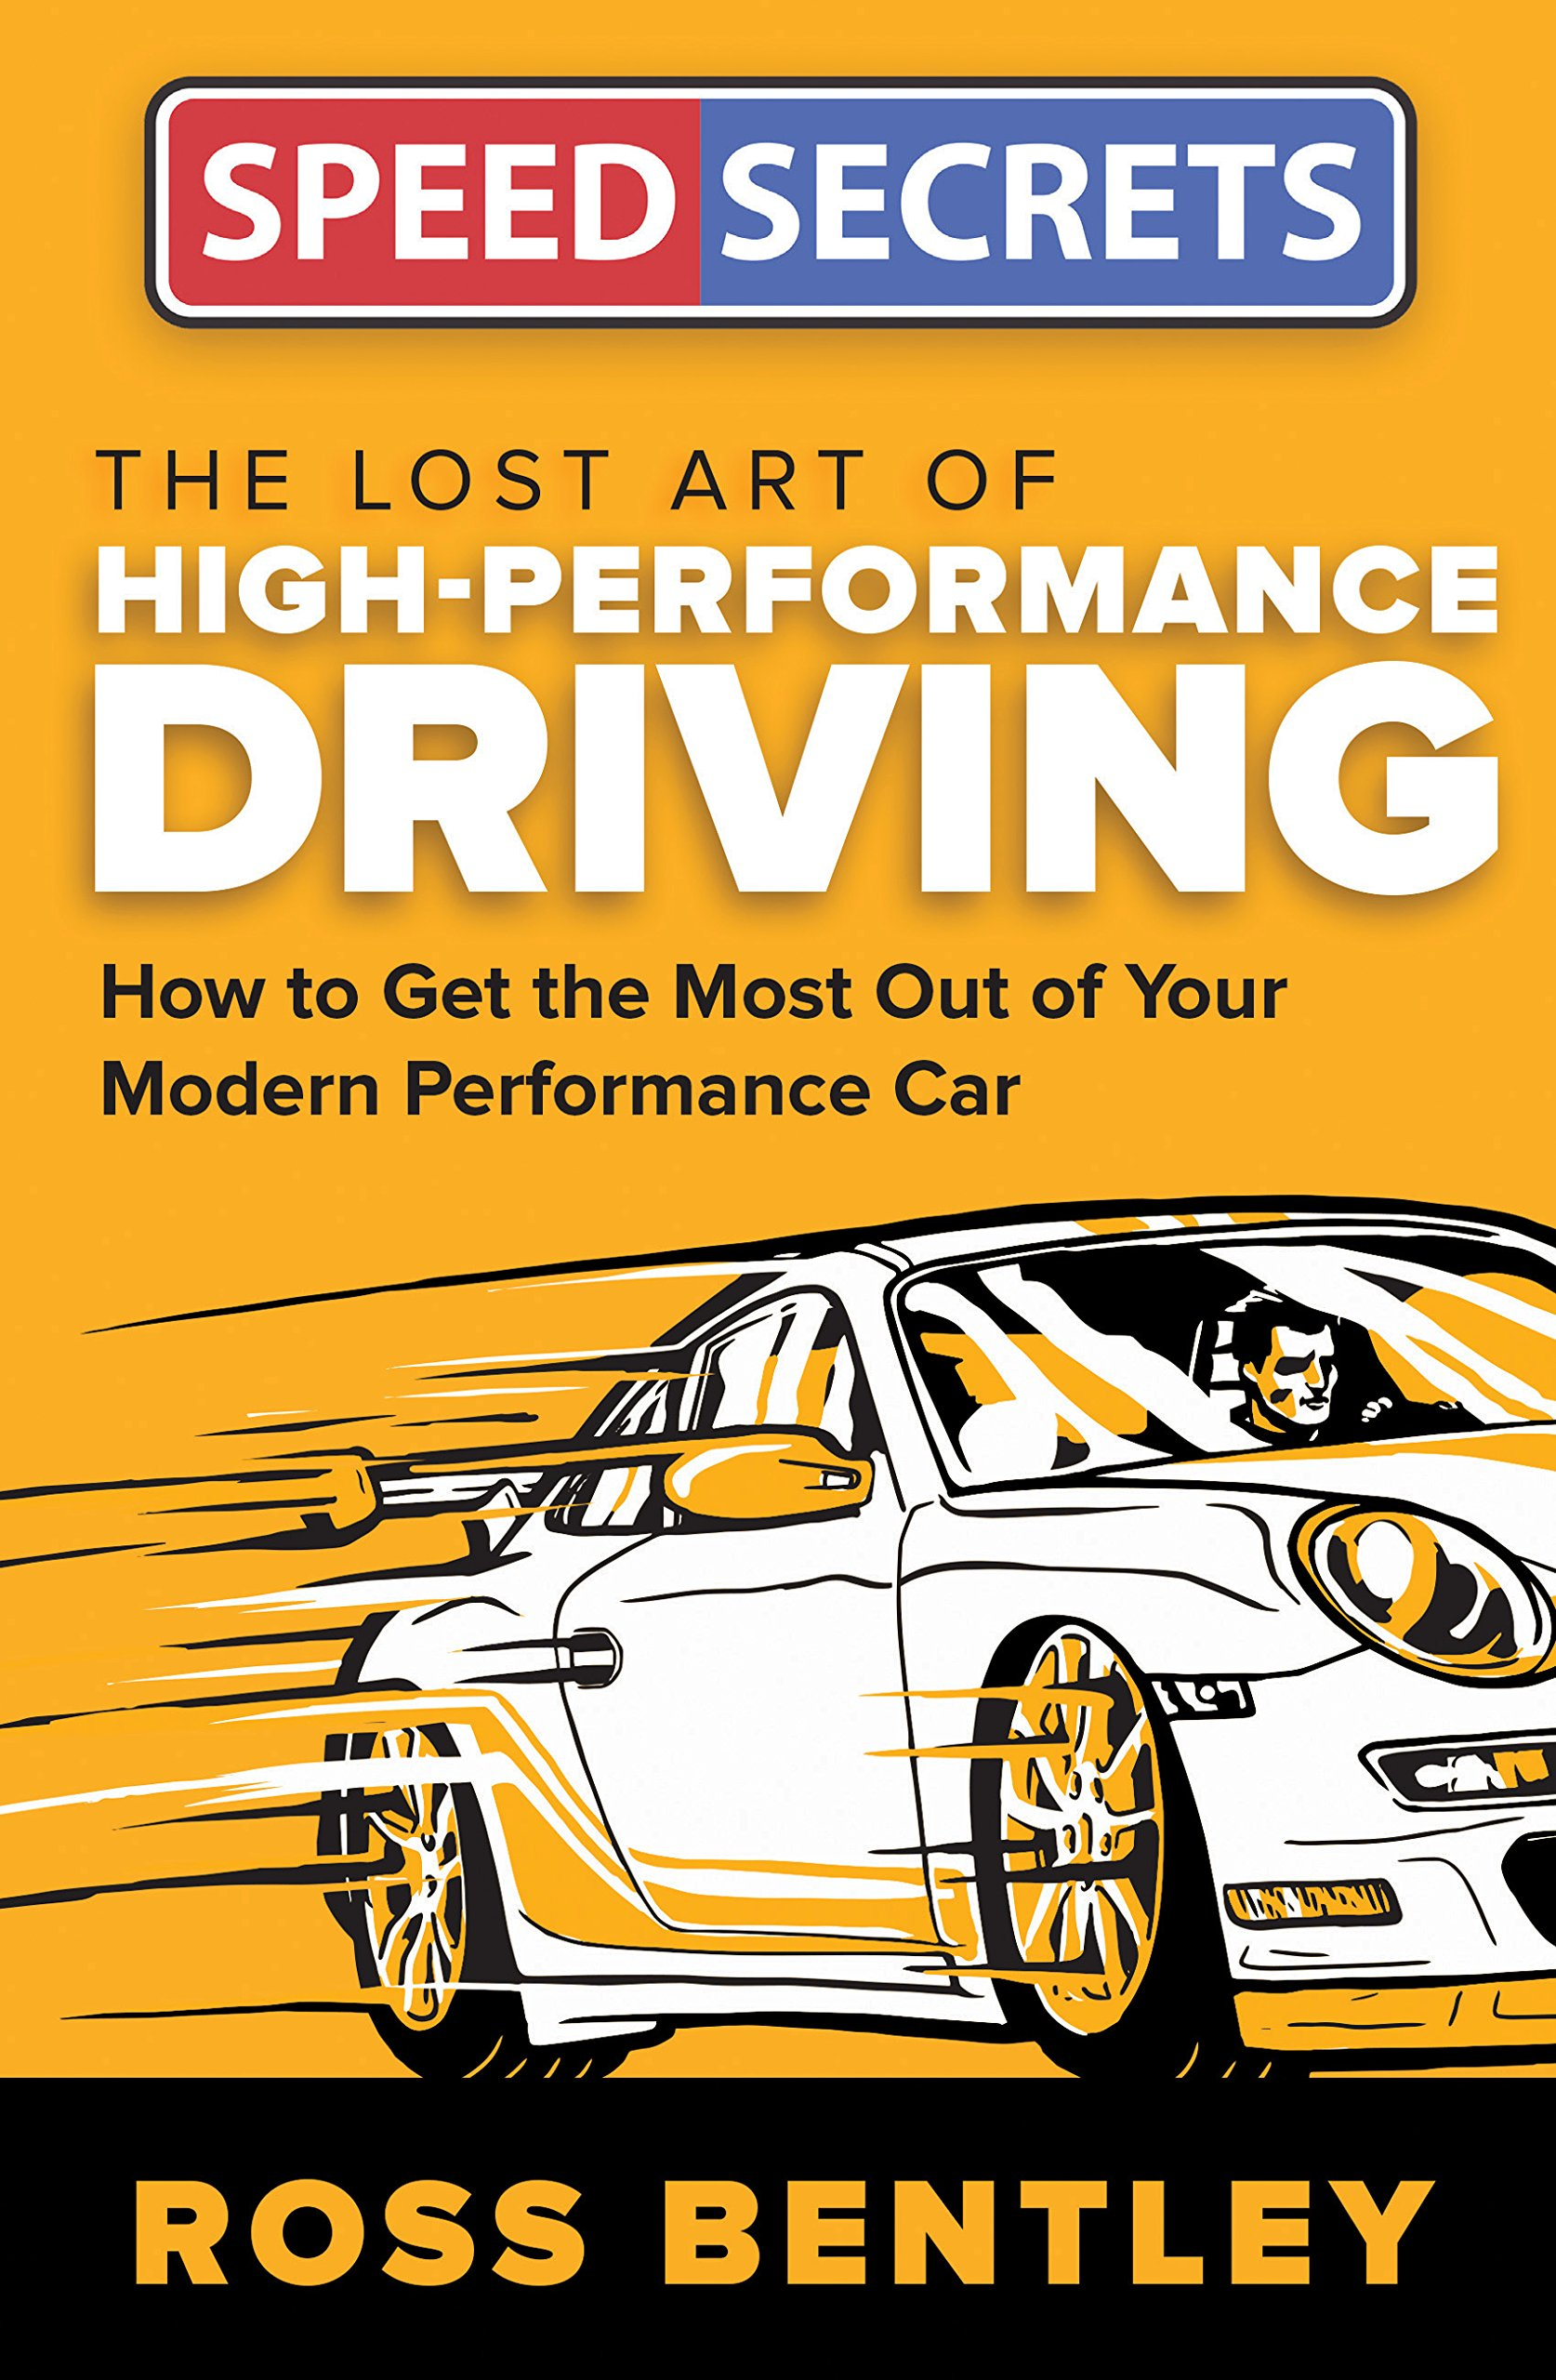 The Lost Art of High-Performance Driving: How to Get the Most Out of Your Modern Performance Car